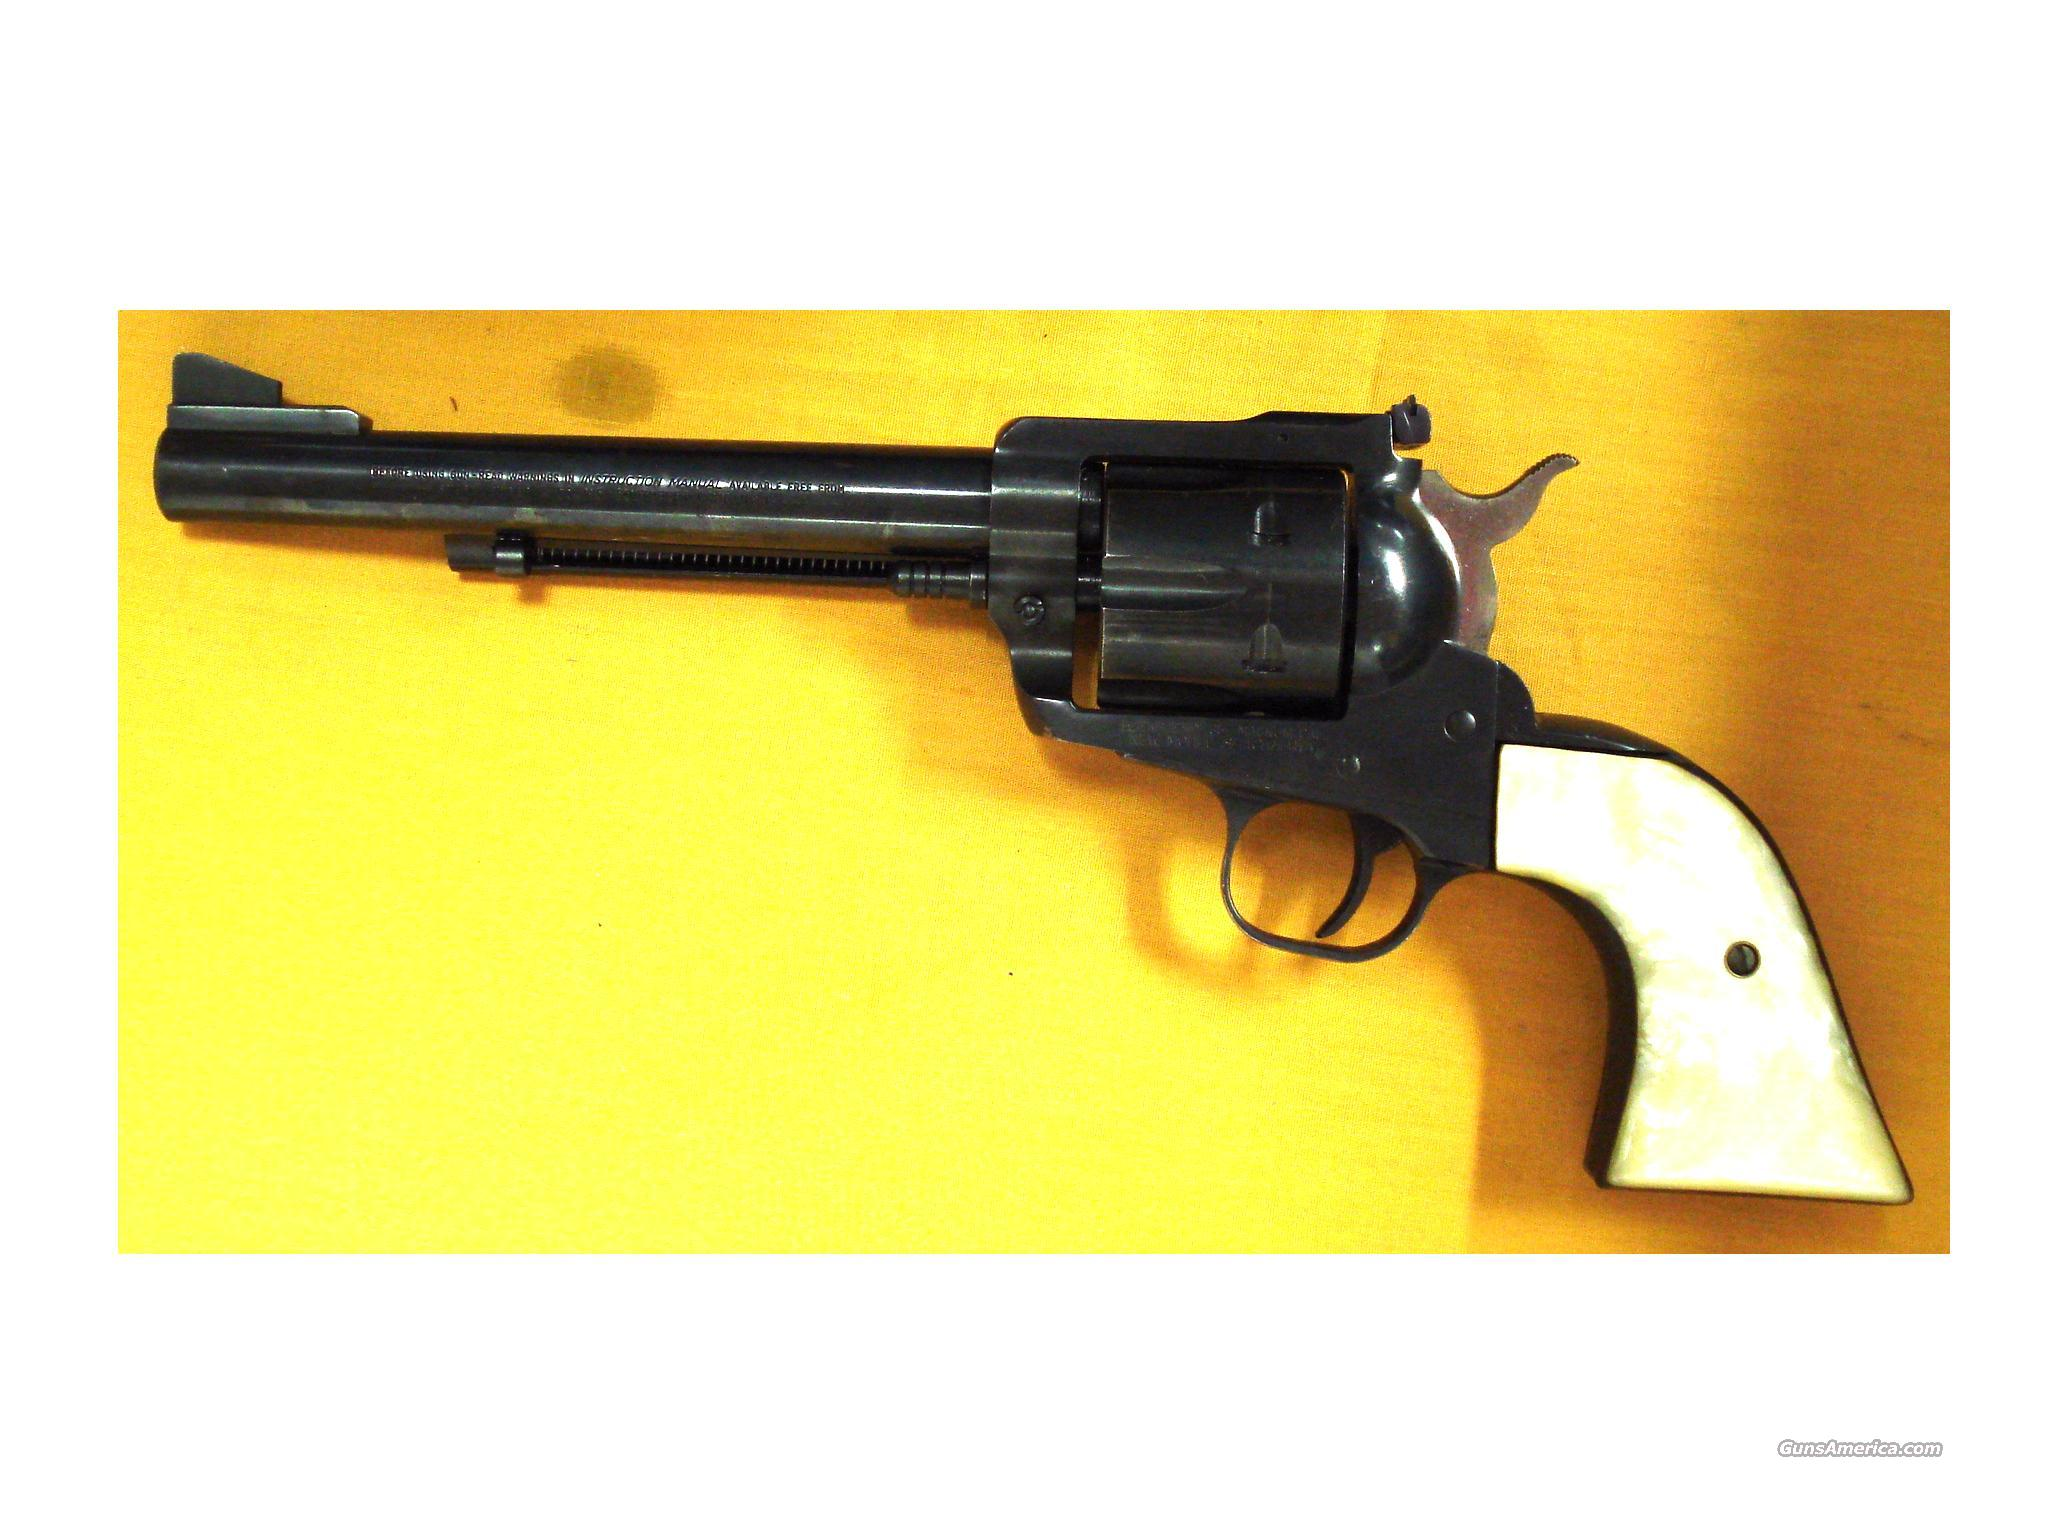 "RUGER NM BLACKHAWK .357 6 1/2""BBL  Guns > Pistols > Ruger Single Action Revolvers > Blackhawk Type"